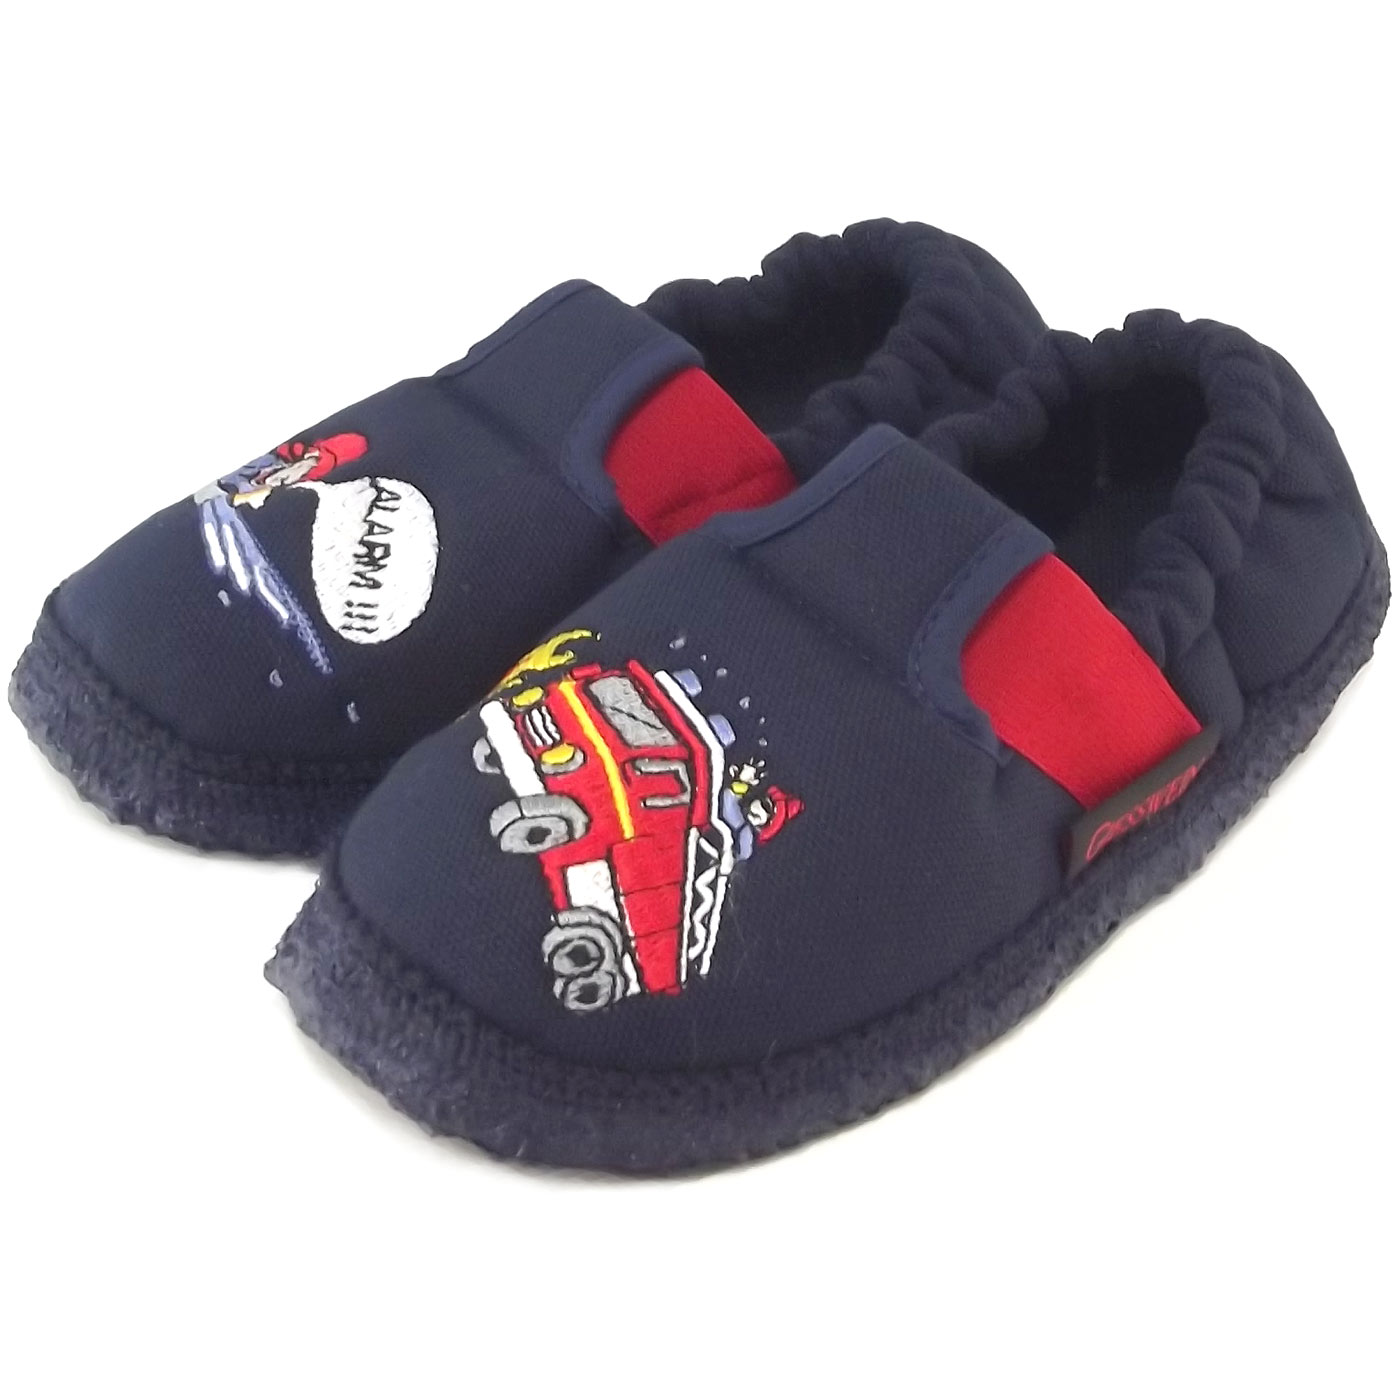 giesswein aurich jungen hausschuhe dunkelblau slipper klettschuhe kinder hausschuhe haus. Black Bedroom Furniture Sets. Home Design Ideas